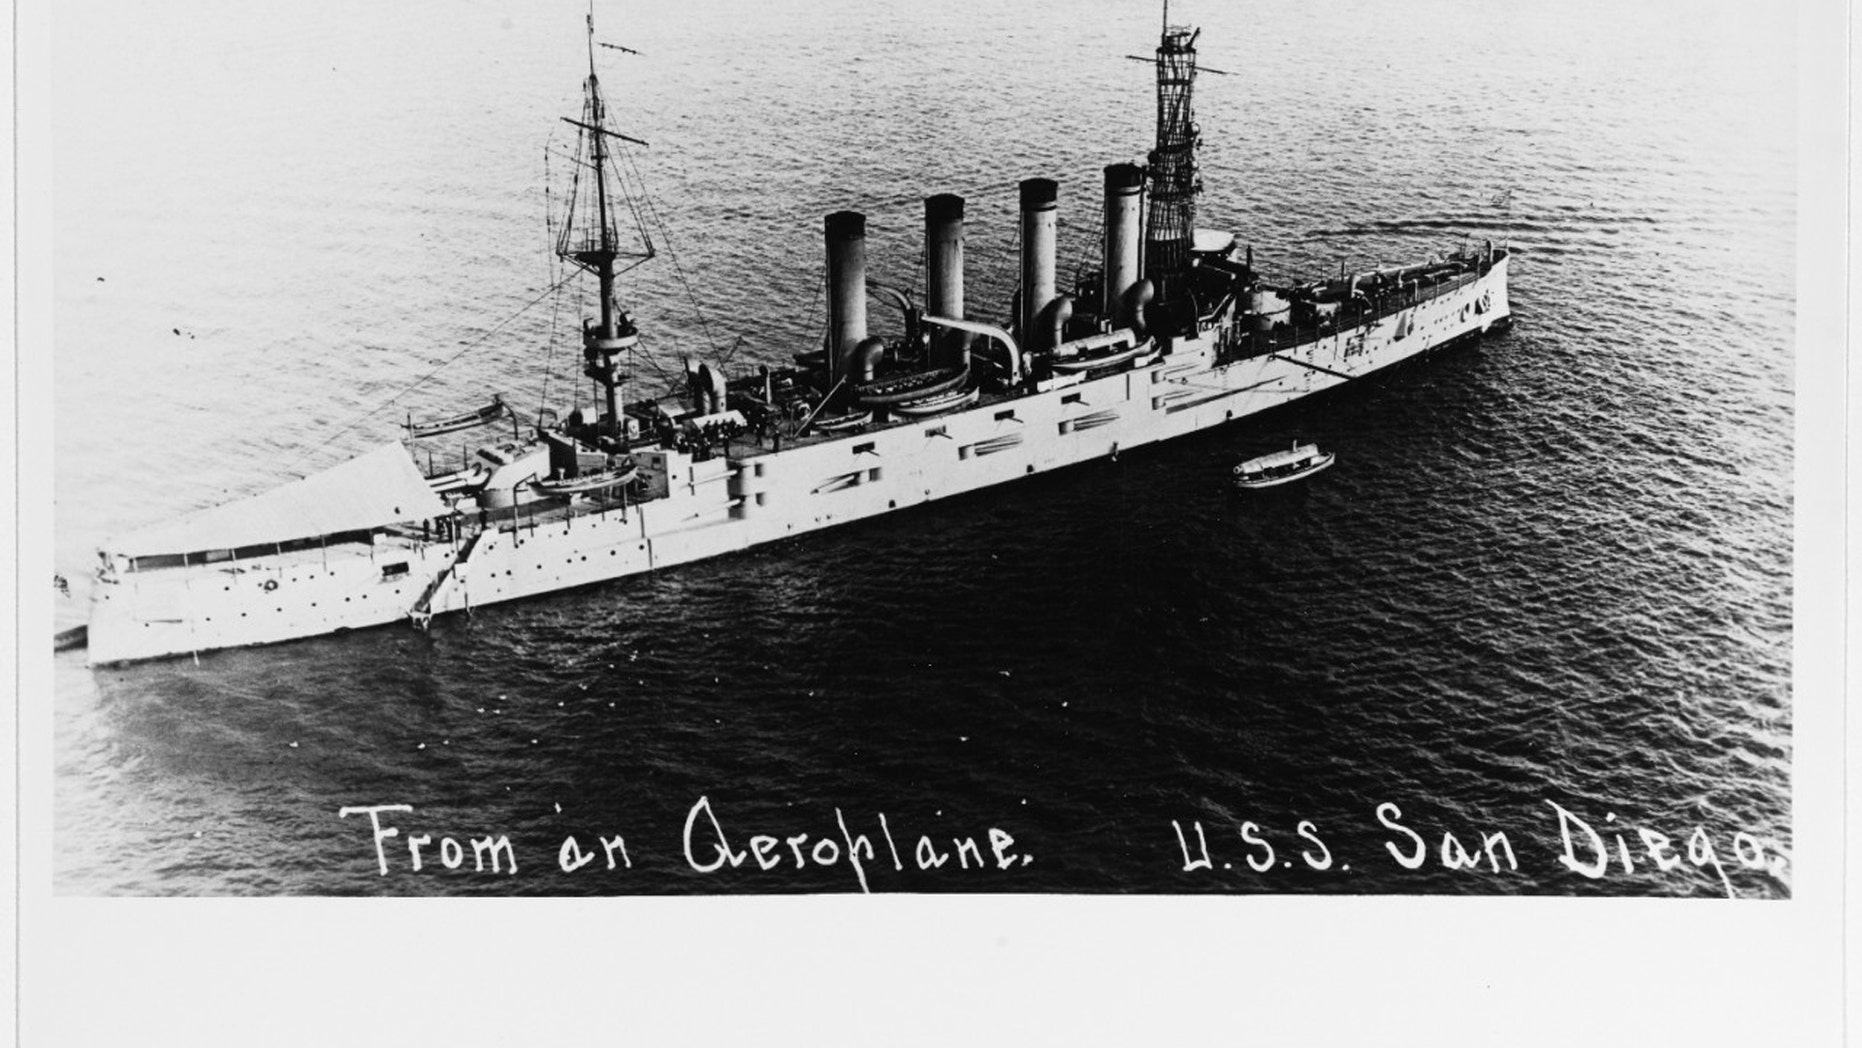 mystery behind wwi shipwreck possibly solved during